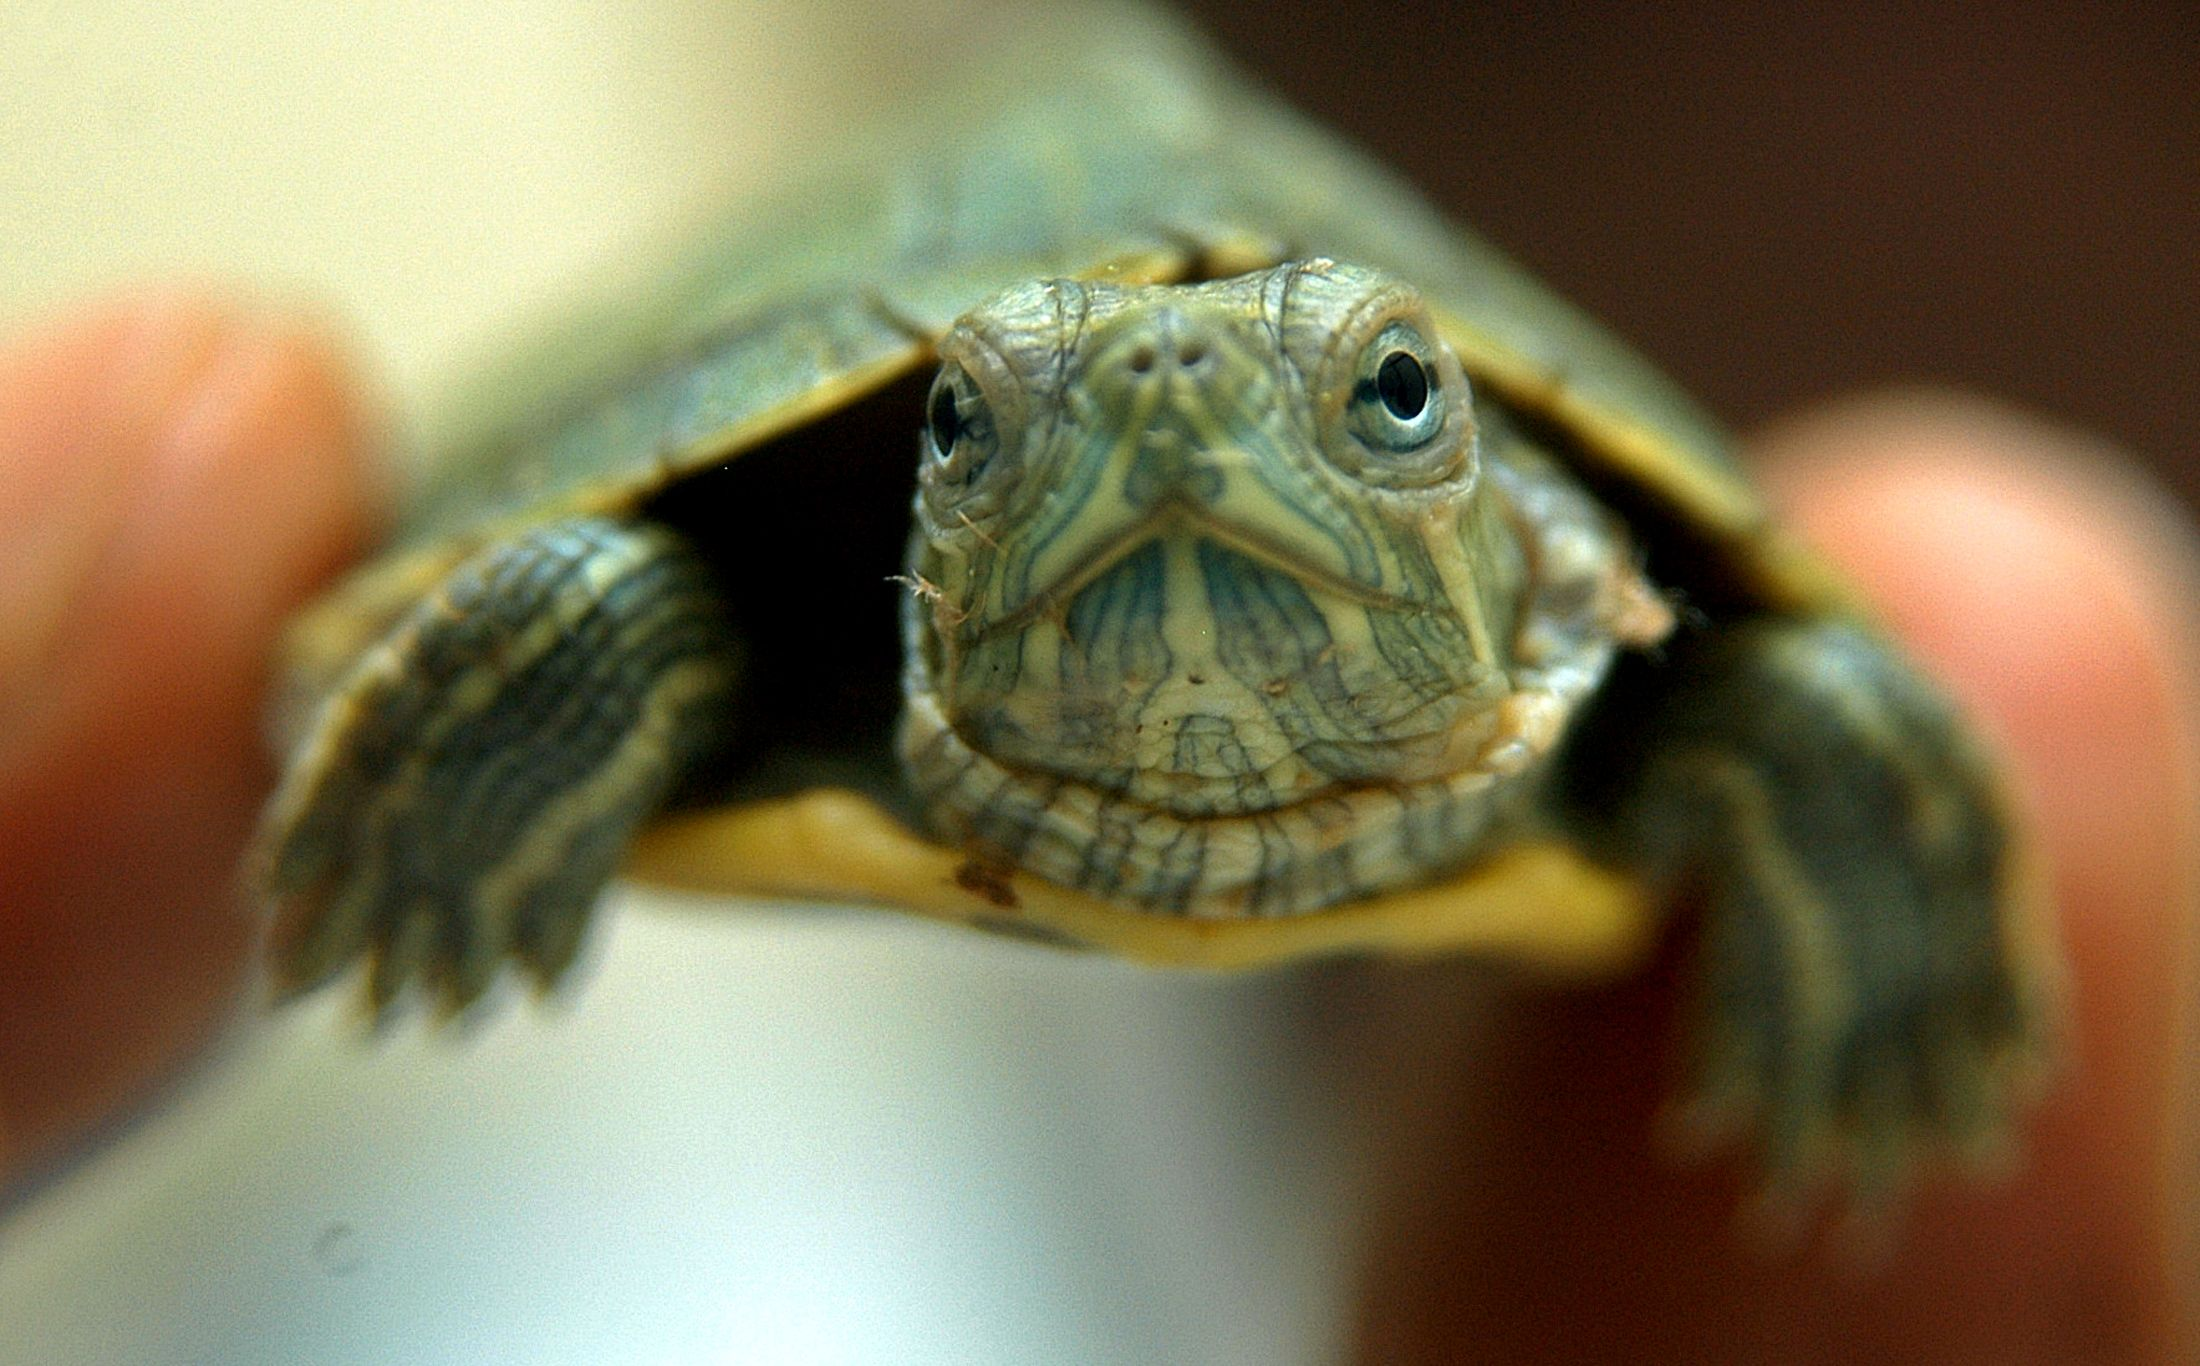 Illegal Traders Have Turned Baby Red Eared Sliders Into A